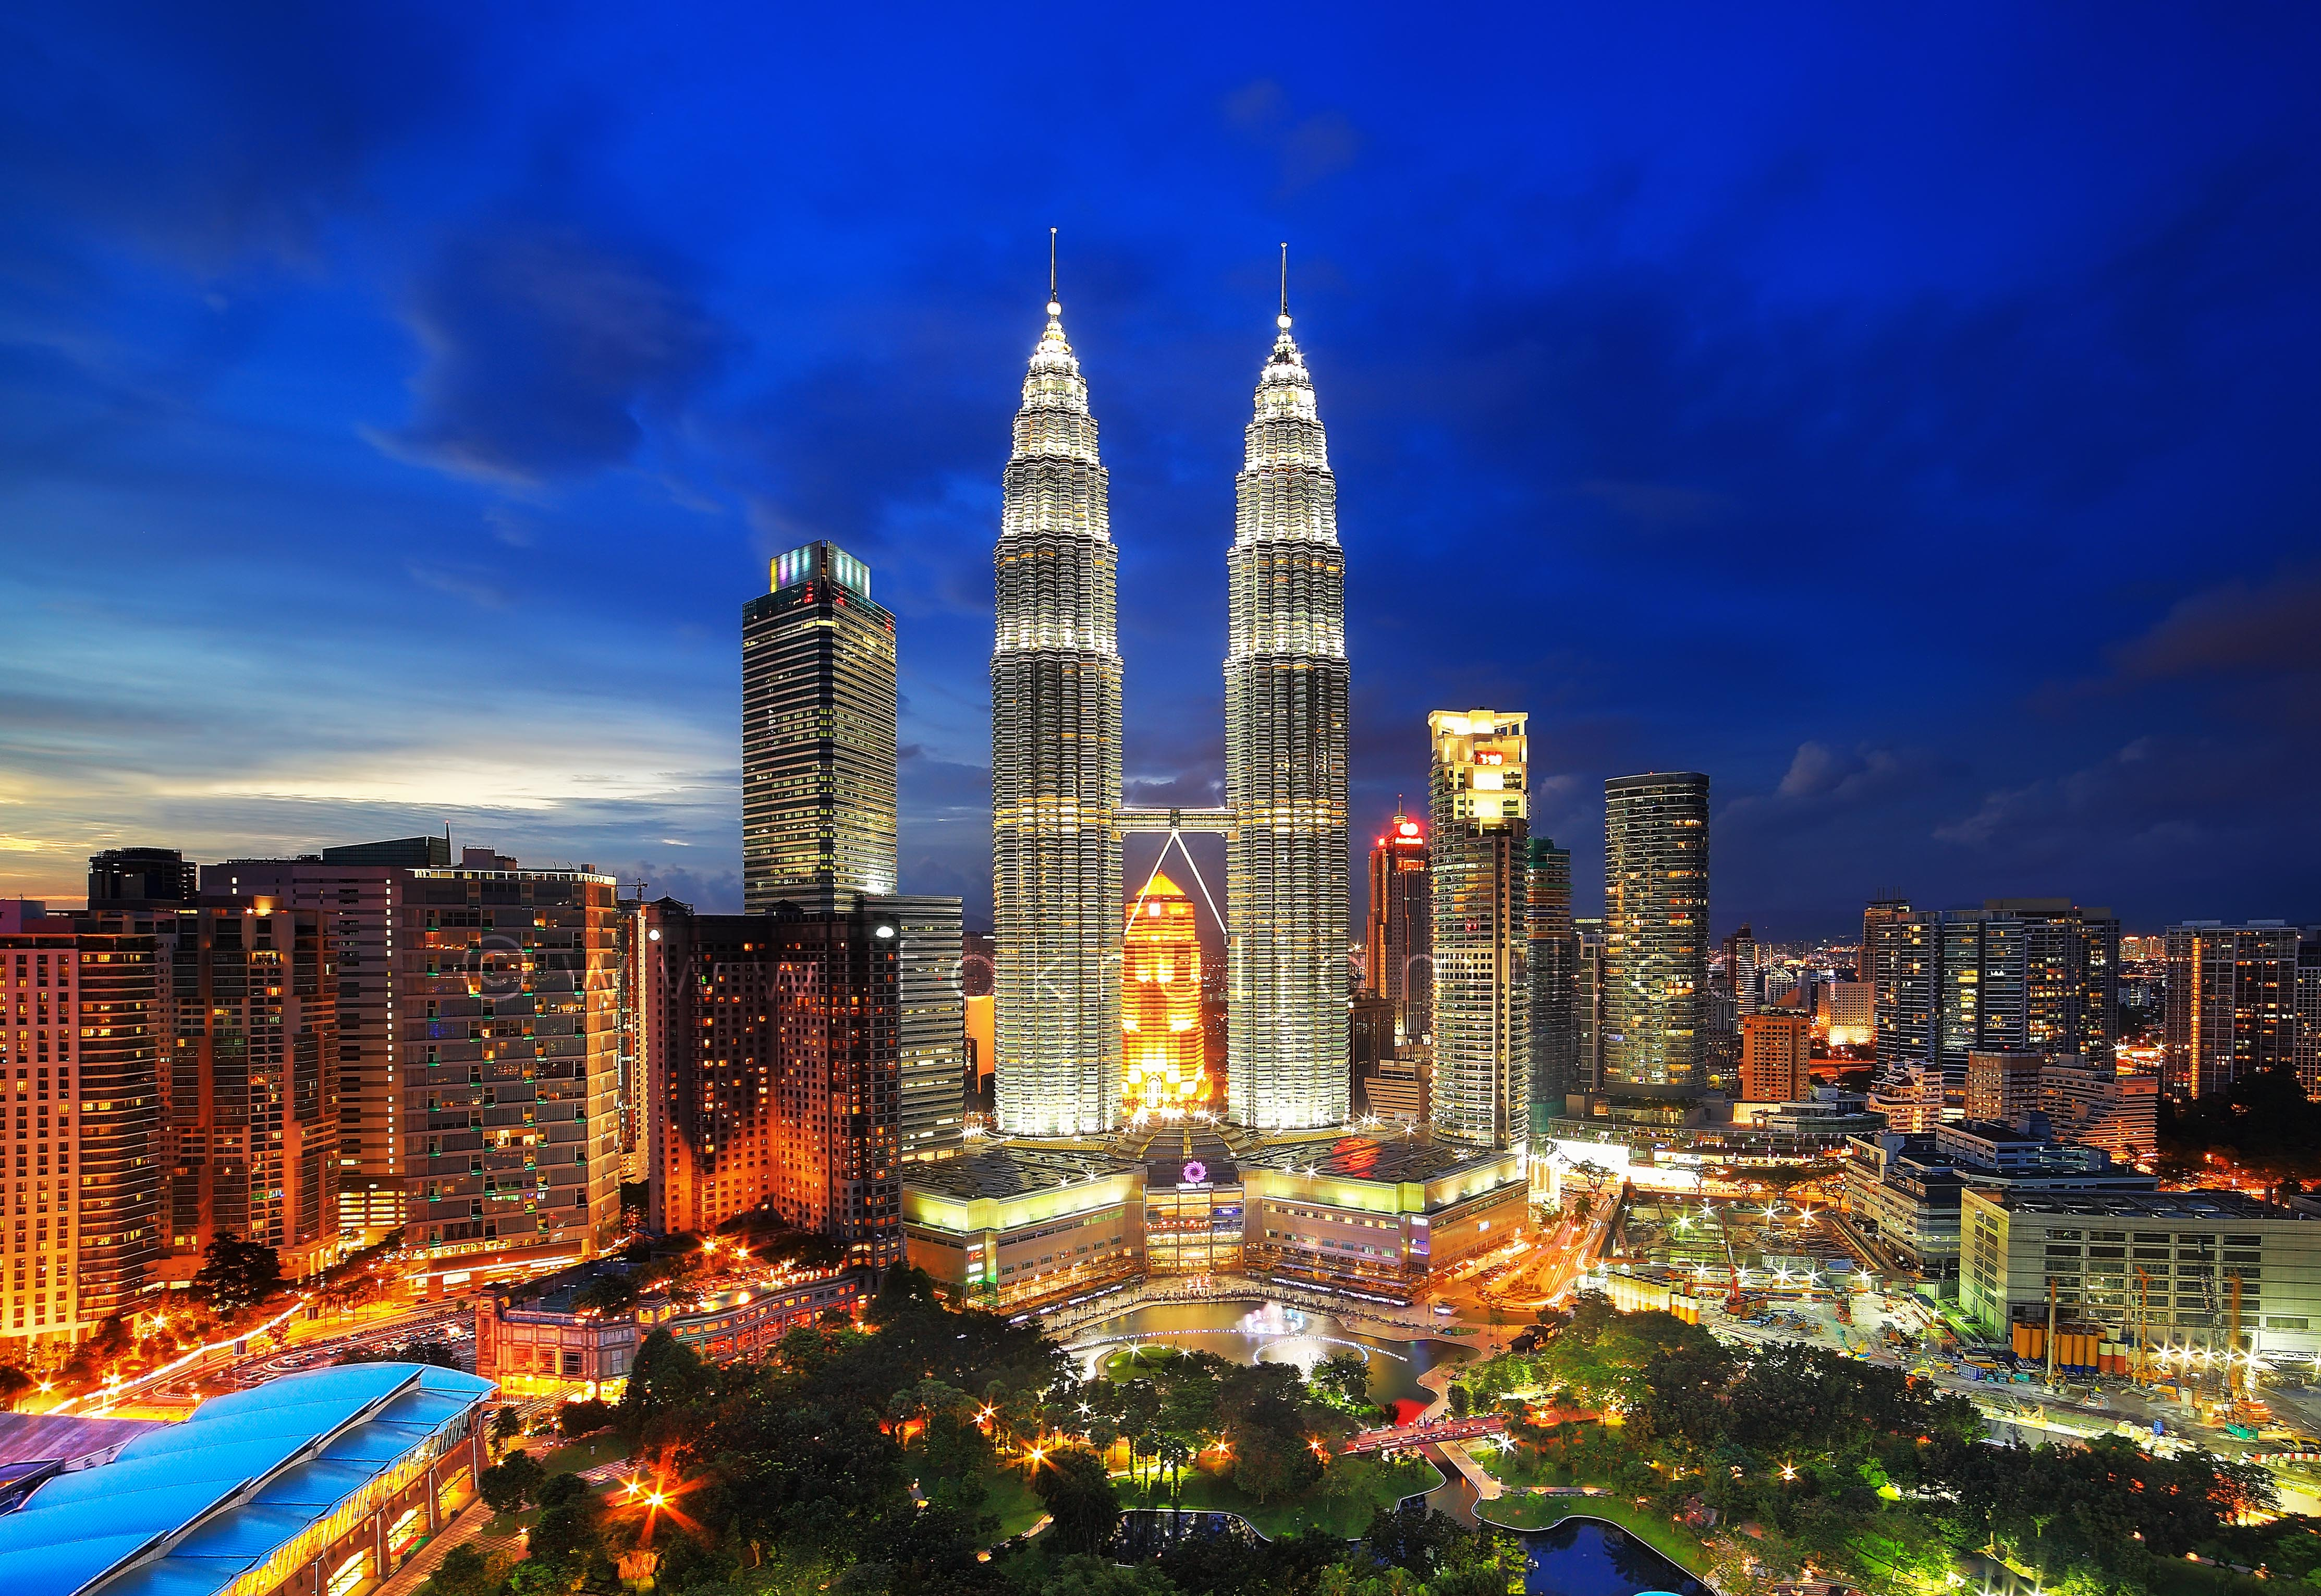 Kuala Lumpur Cityscapes Collection